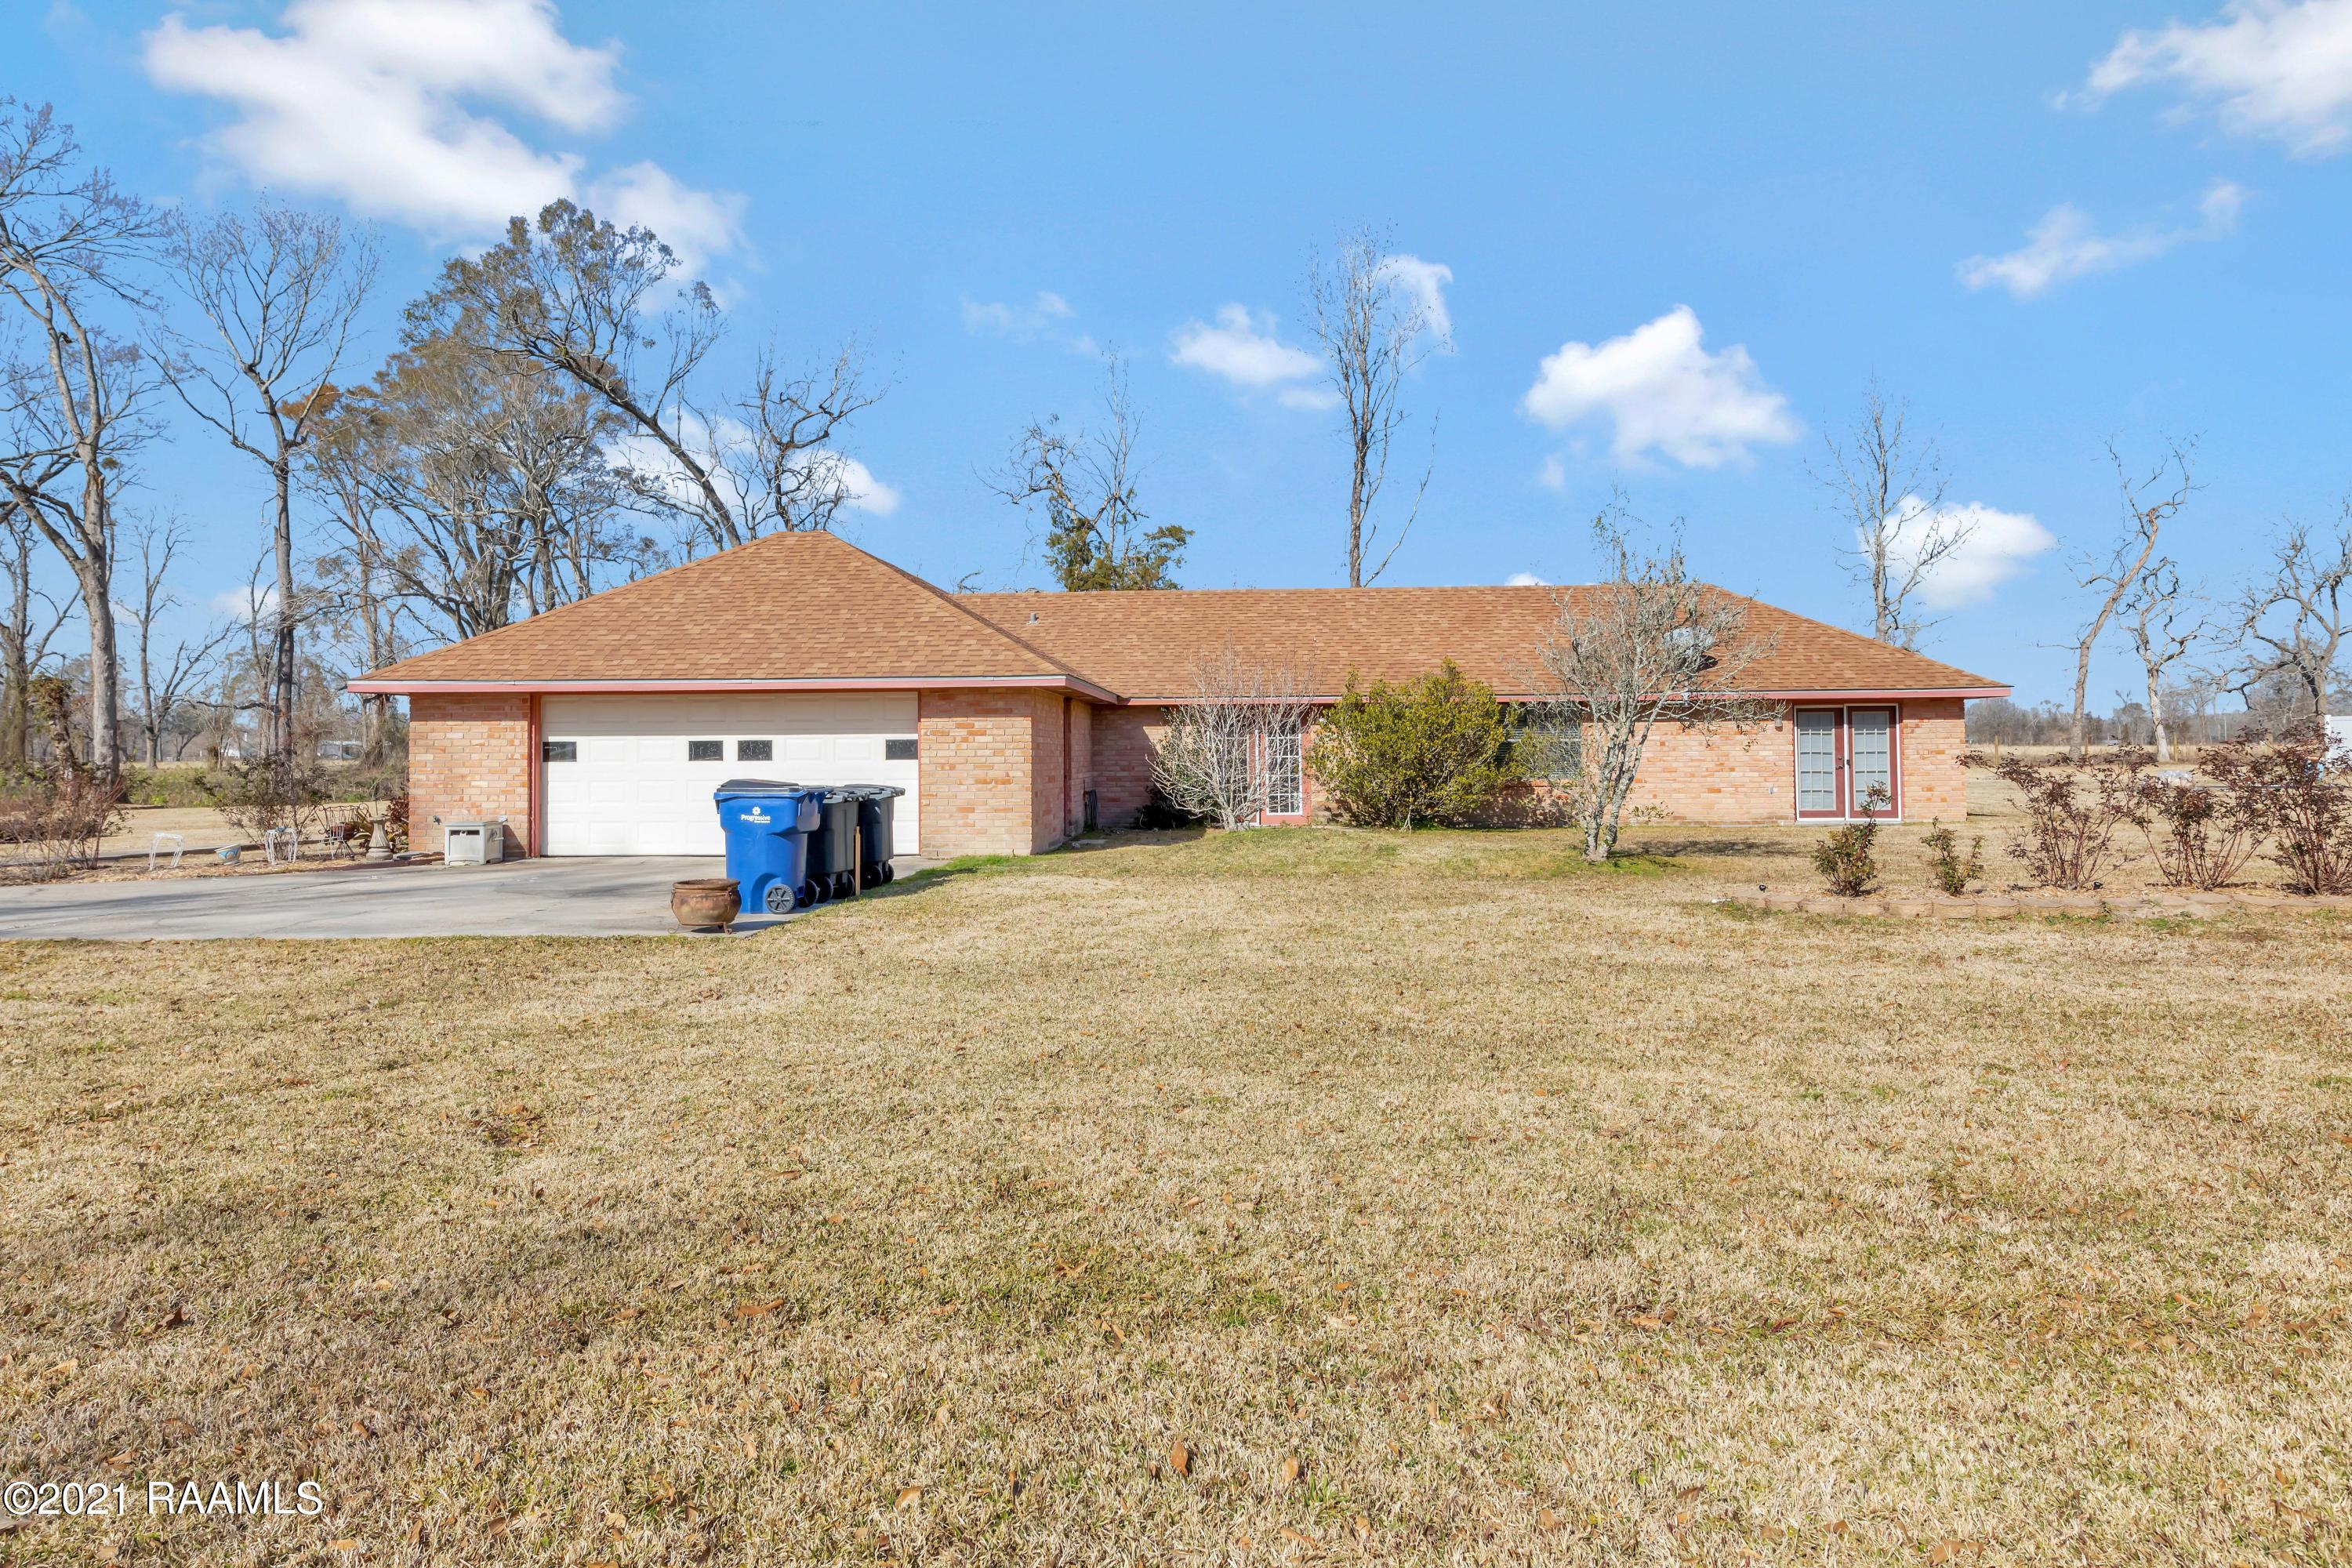 265 Choctaw Drive, Sunset, LA 70584 Photo #25